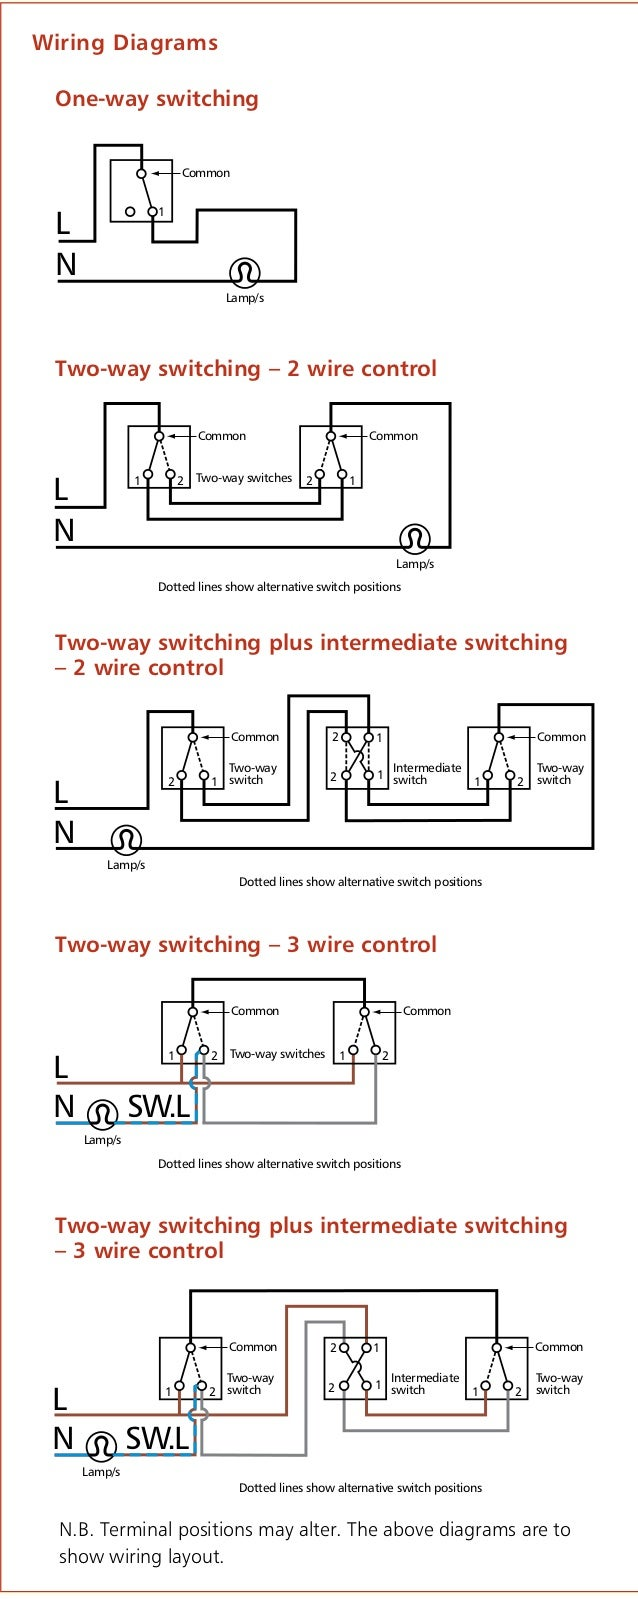 Wiring diagrams on two way switch intermediate intermediate switch image difference between two way and intermediate switch